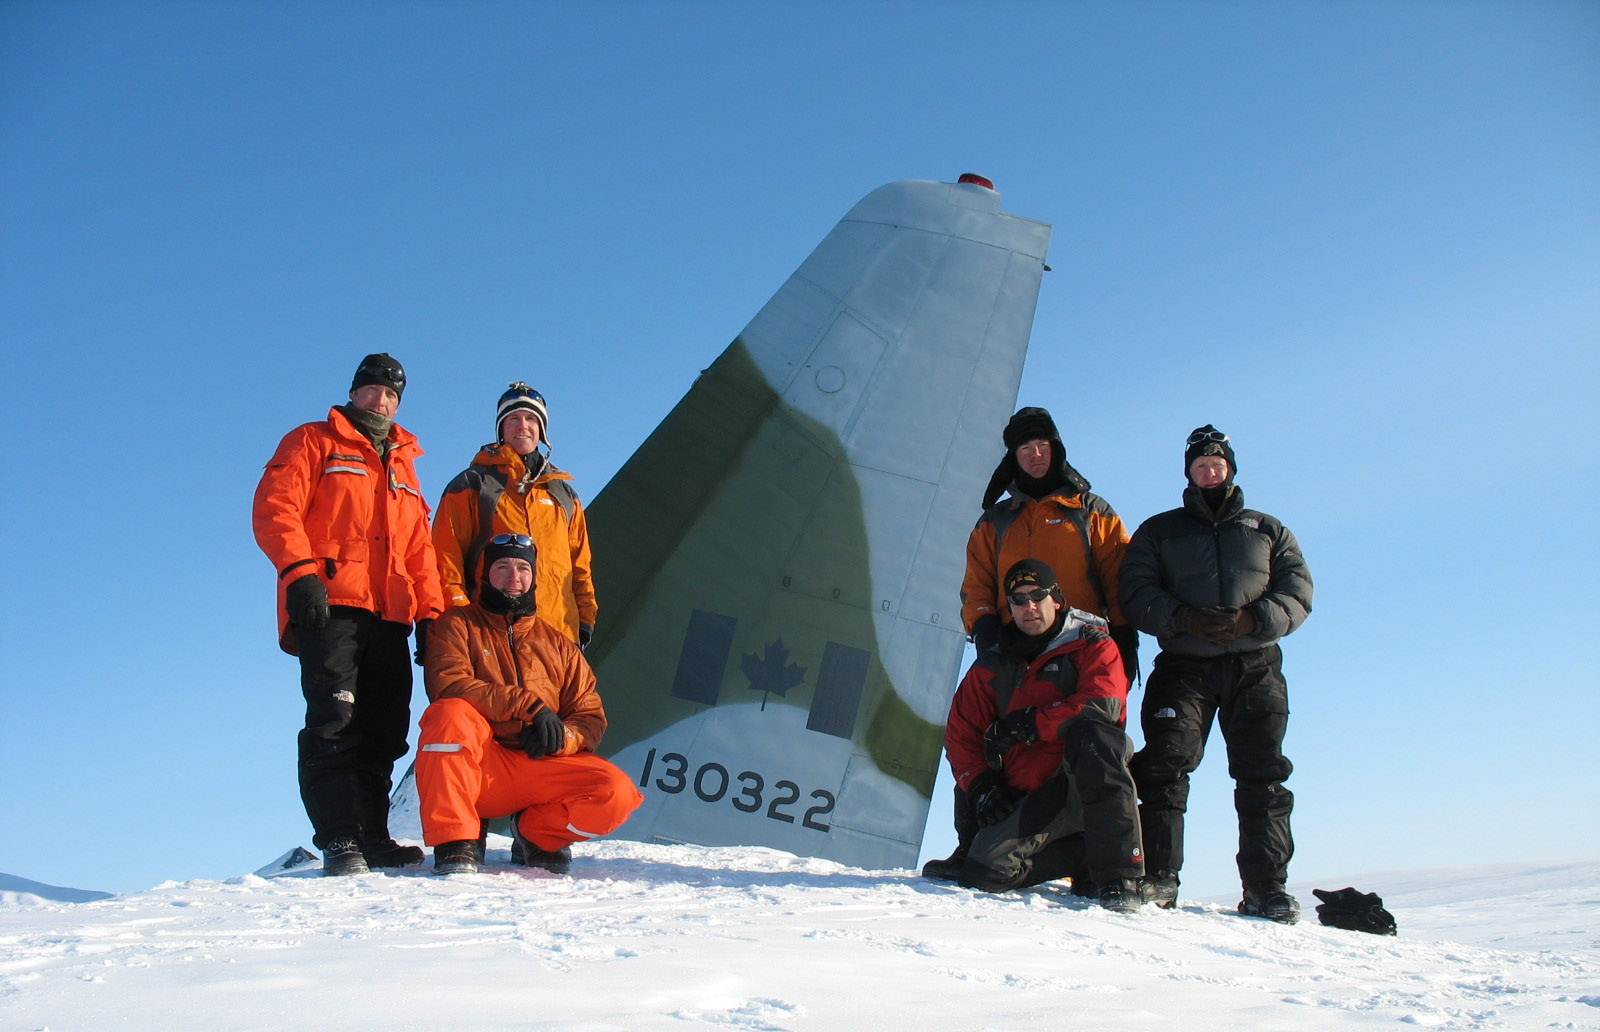 In April 2008, six search and rescue technicians from 14 Wing Greenwood, Nova Scotia, participated in a two-week survival course near Canadian Forces Station Alert. During their time on Ellesmere Island, the team honoured the memory and heroism of those who died in the October 1991 crash of a CC-130 Hercules near Alert, and the subsequent rescue efforts of determined search and rescue technicians. Here they visit the crash site, where the tail of the Hercules protruded above the spring snow cover. Front row (left to right) Master Corporal André Bergeron and Sergeant Dan Villeneuve; back row (left to right) Sergeant Sean MacEachern, Warrant Officer Keith Mitchell, Master Corporal Rob Hardie and Master Corporal Dan Bodden. PHOTO: Courtesy Warrant Officer Keith Mitchell